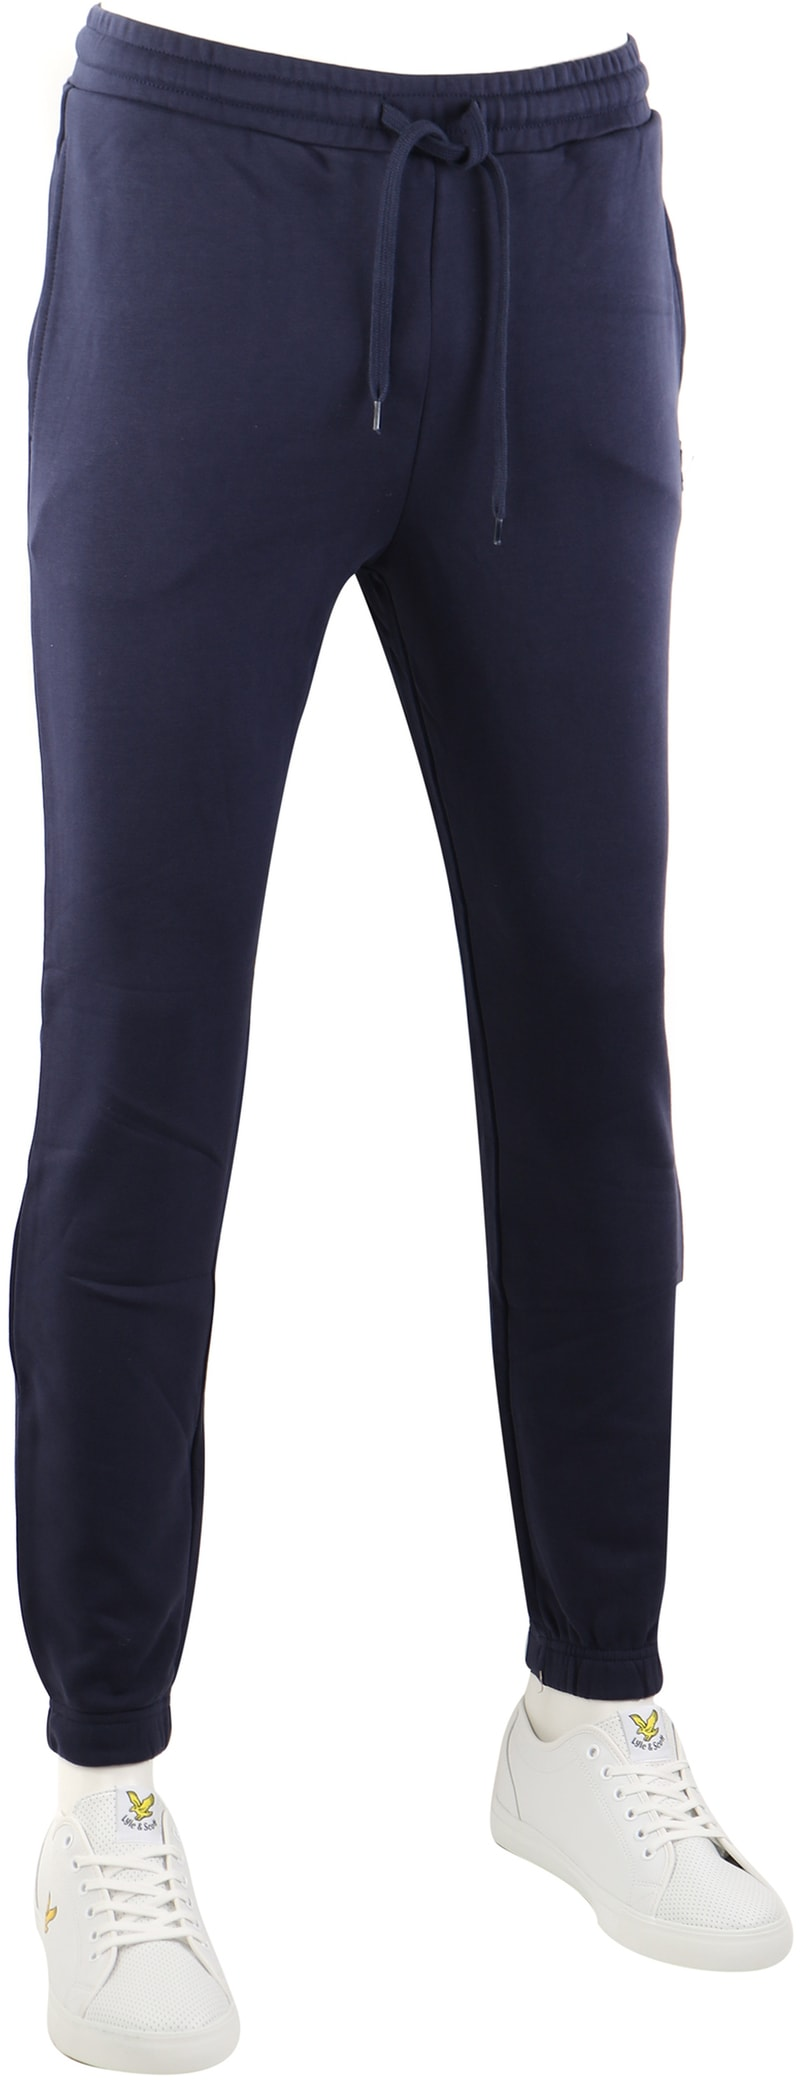 Lyle & Scott Joggingbroek Donkerblauw  online bestellen | Suitable